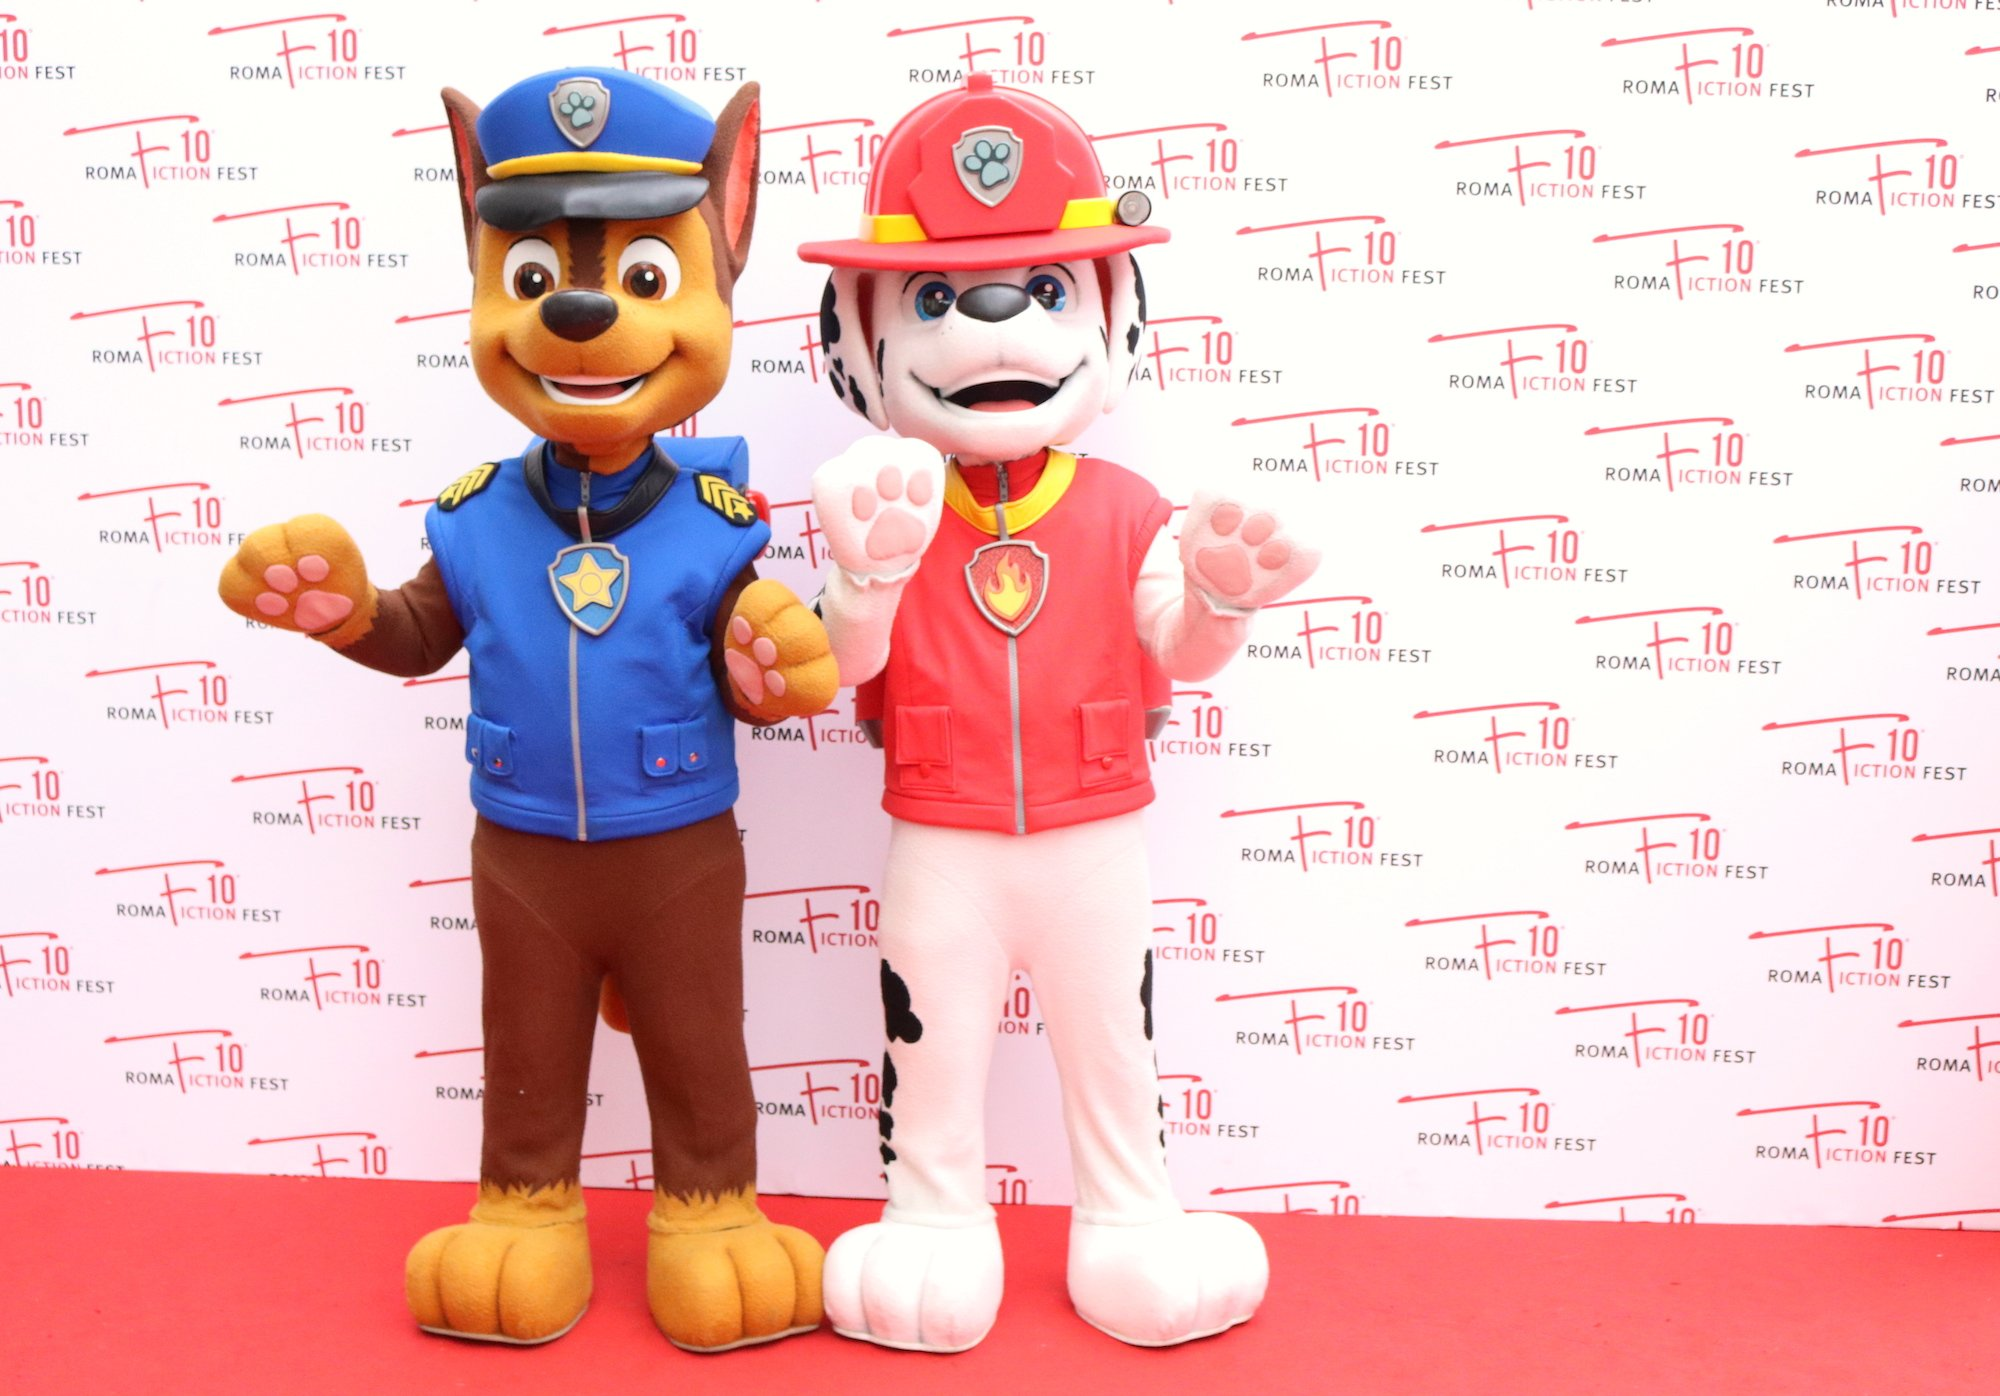 Roma Fiction Fest 2016: i cuccioli di PAW Patrol posano sul red carpet